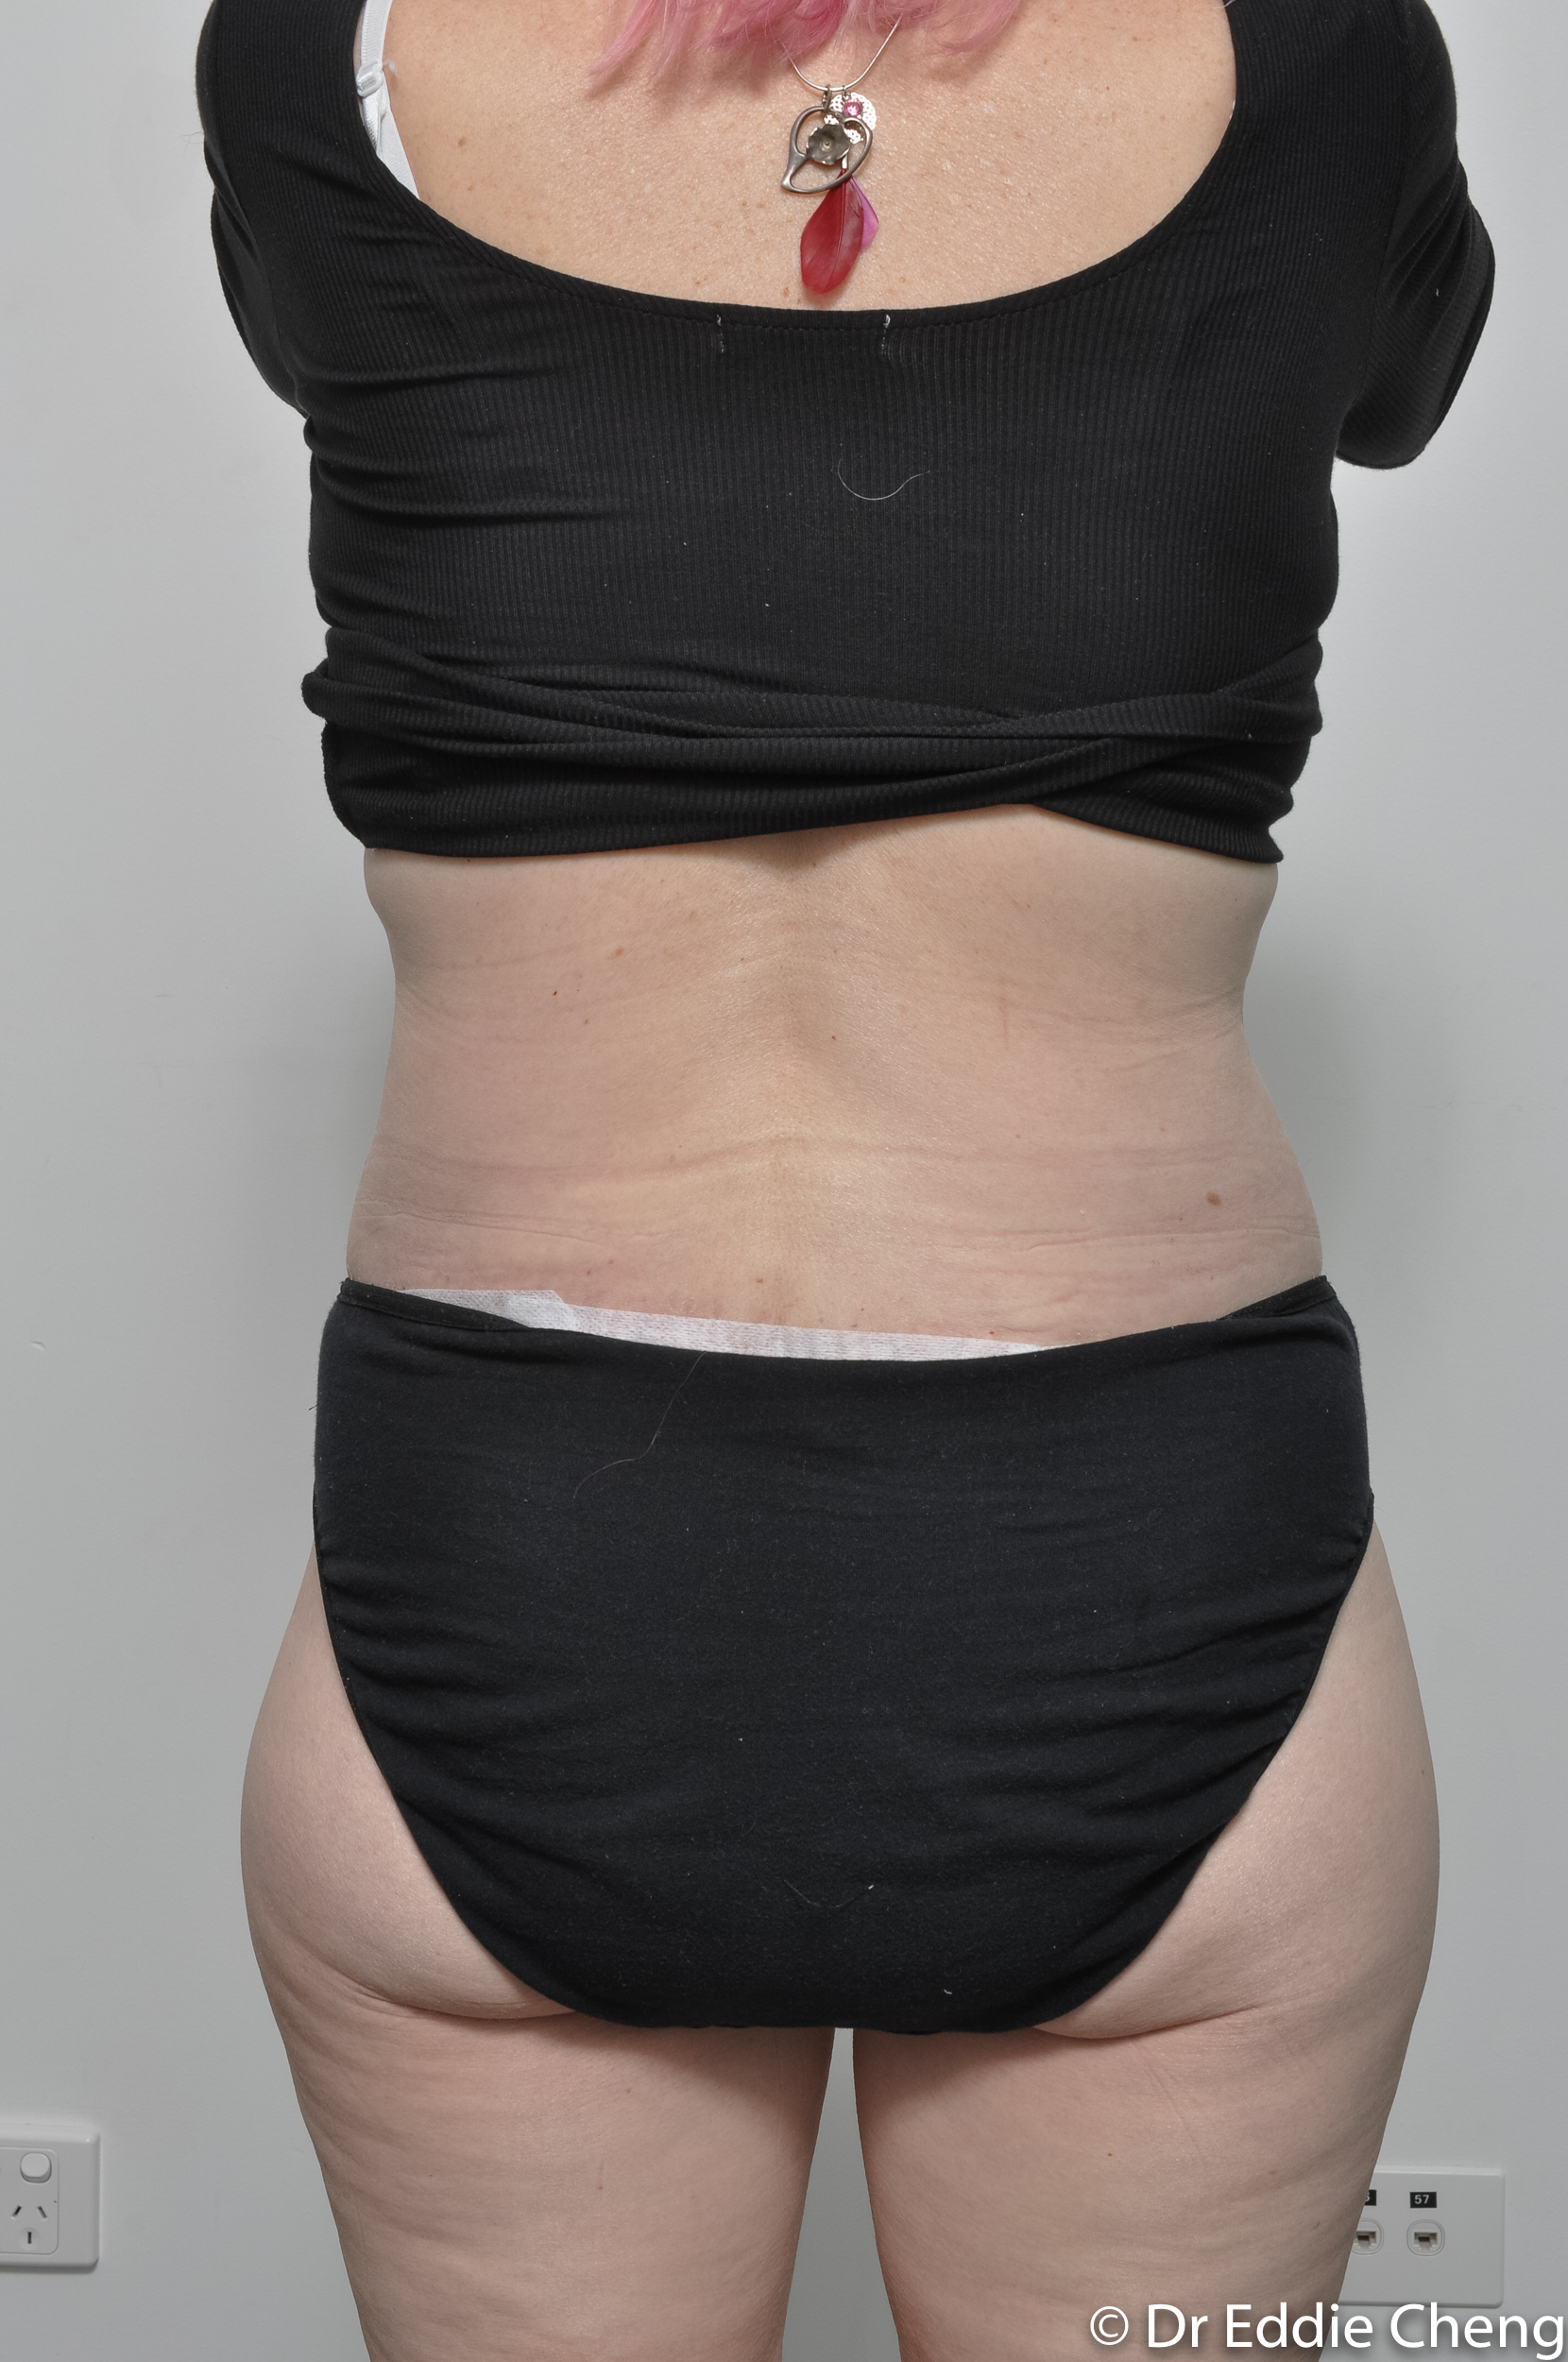 body lift brisbane dr eddie cheng weightloss pre and post op -10